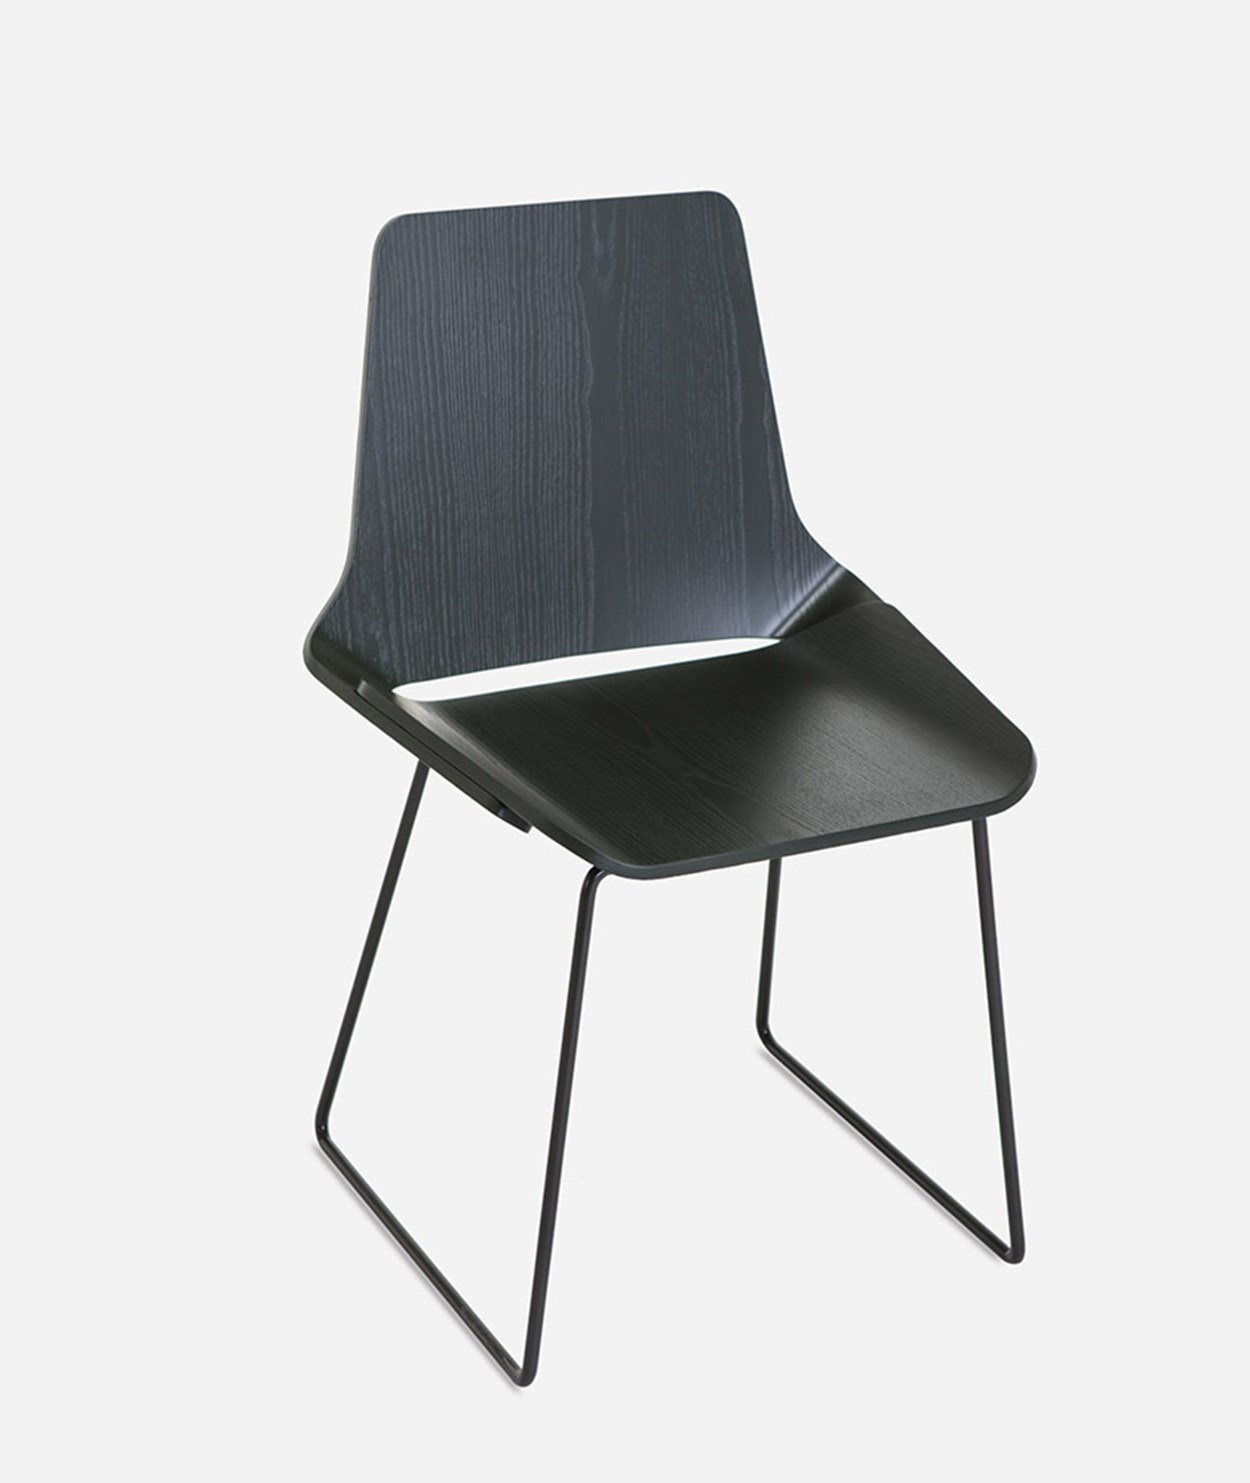 verges-kimmi-254-chair (2).jpg